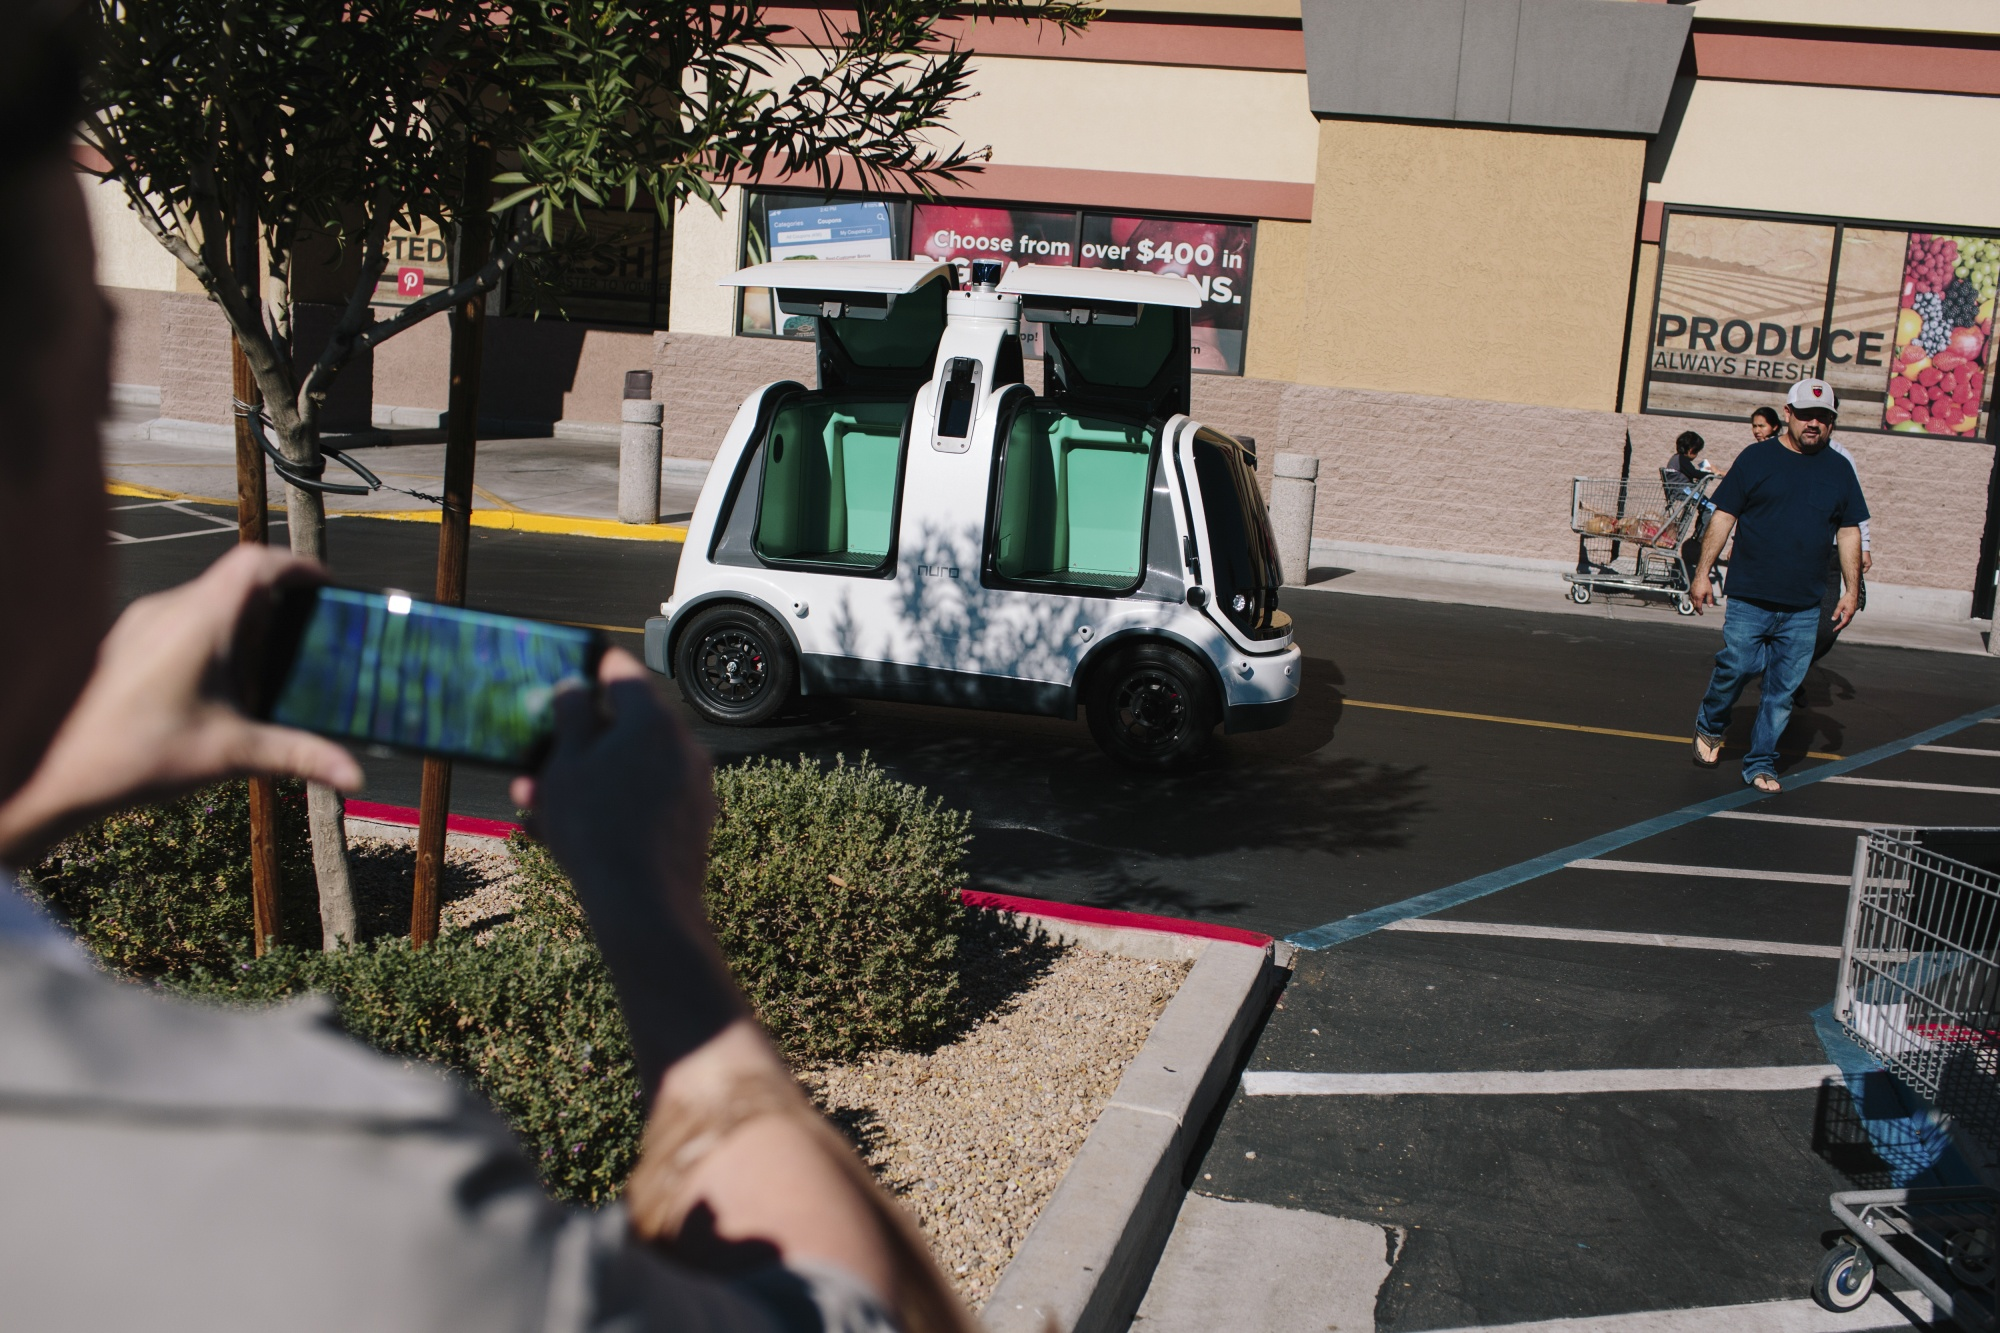 Shoppers photograph a Nuro mini car, which is a self-driving vehicle, outside Fry's Food Store in Scottsdale, Ariz.